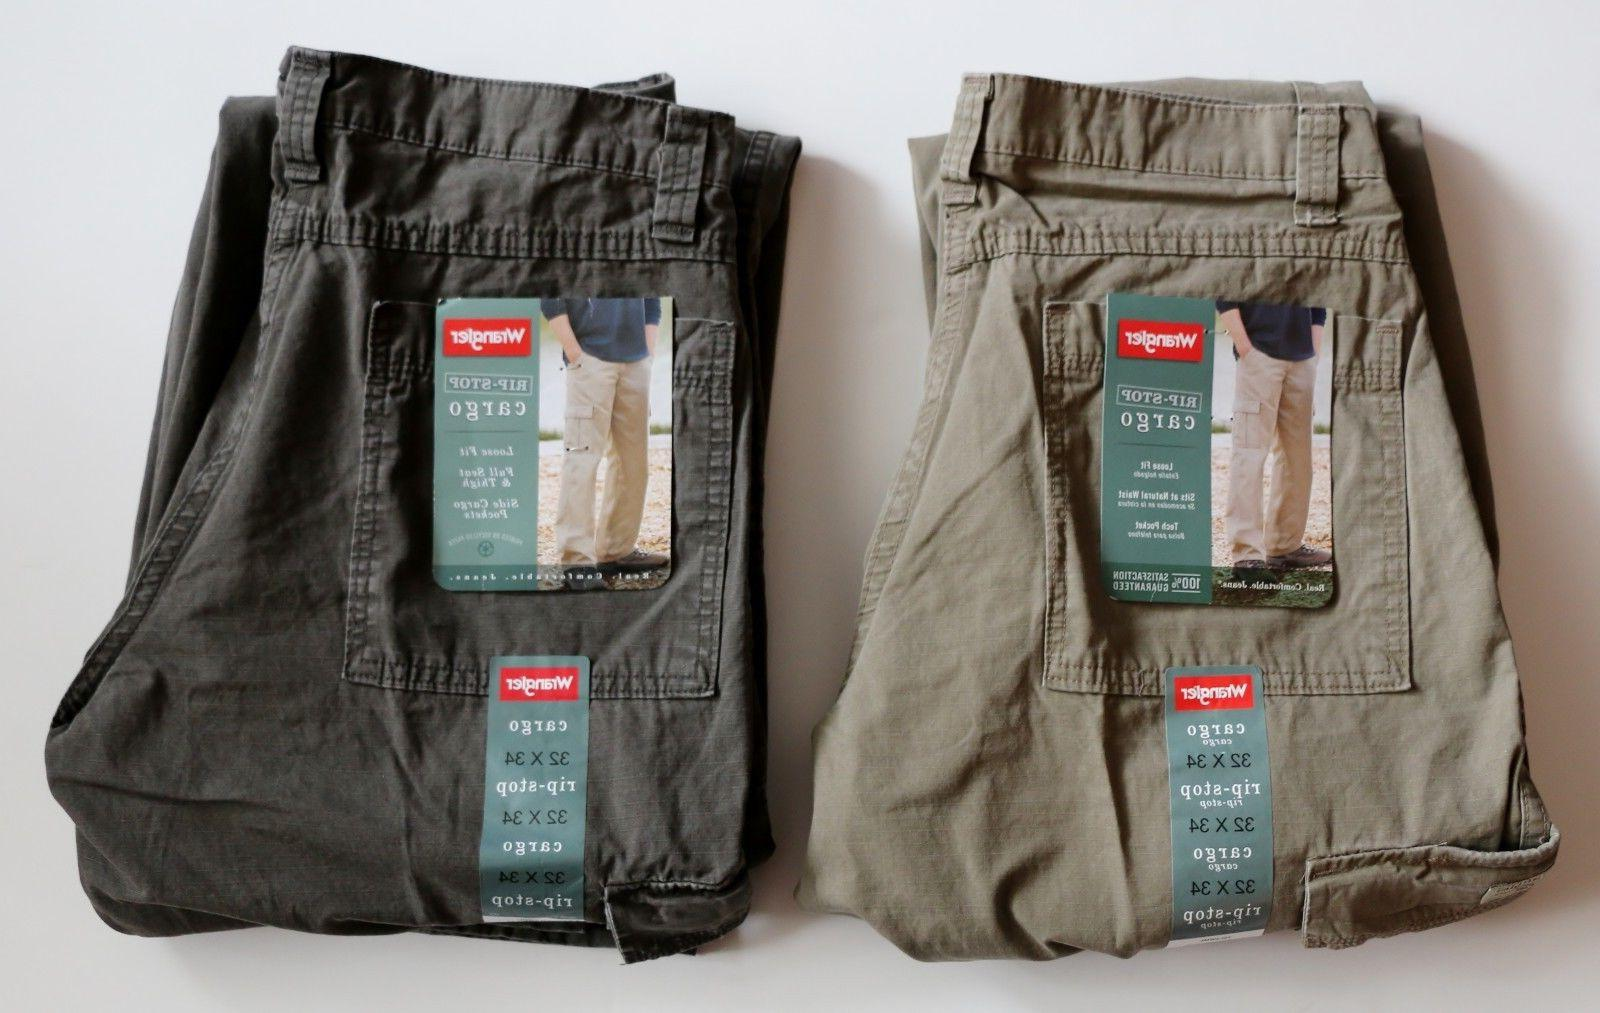 New Wrangler Men's Rip-Stop Cargo Pants Green and Khaki Colo